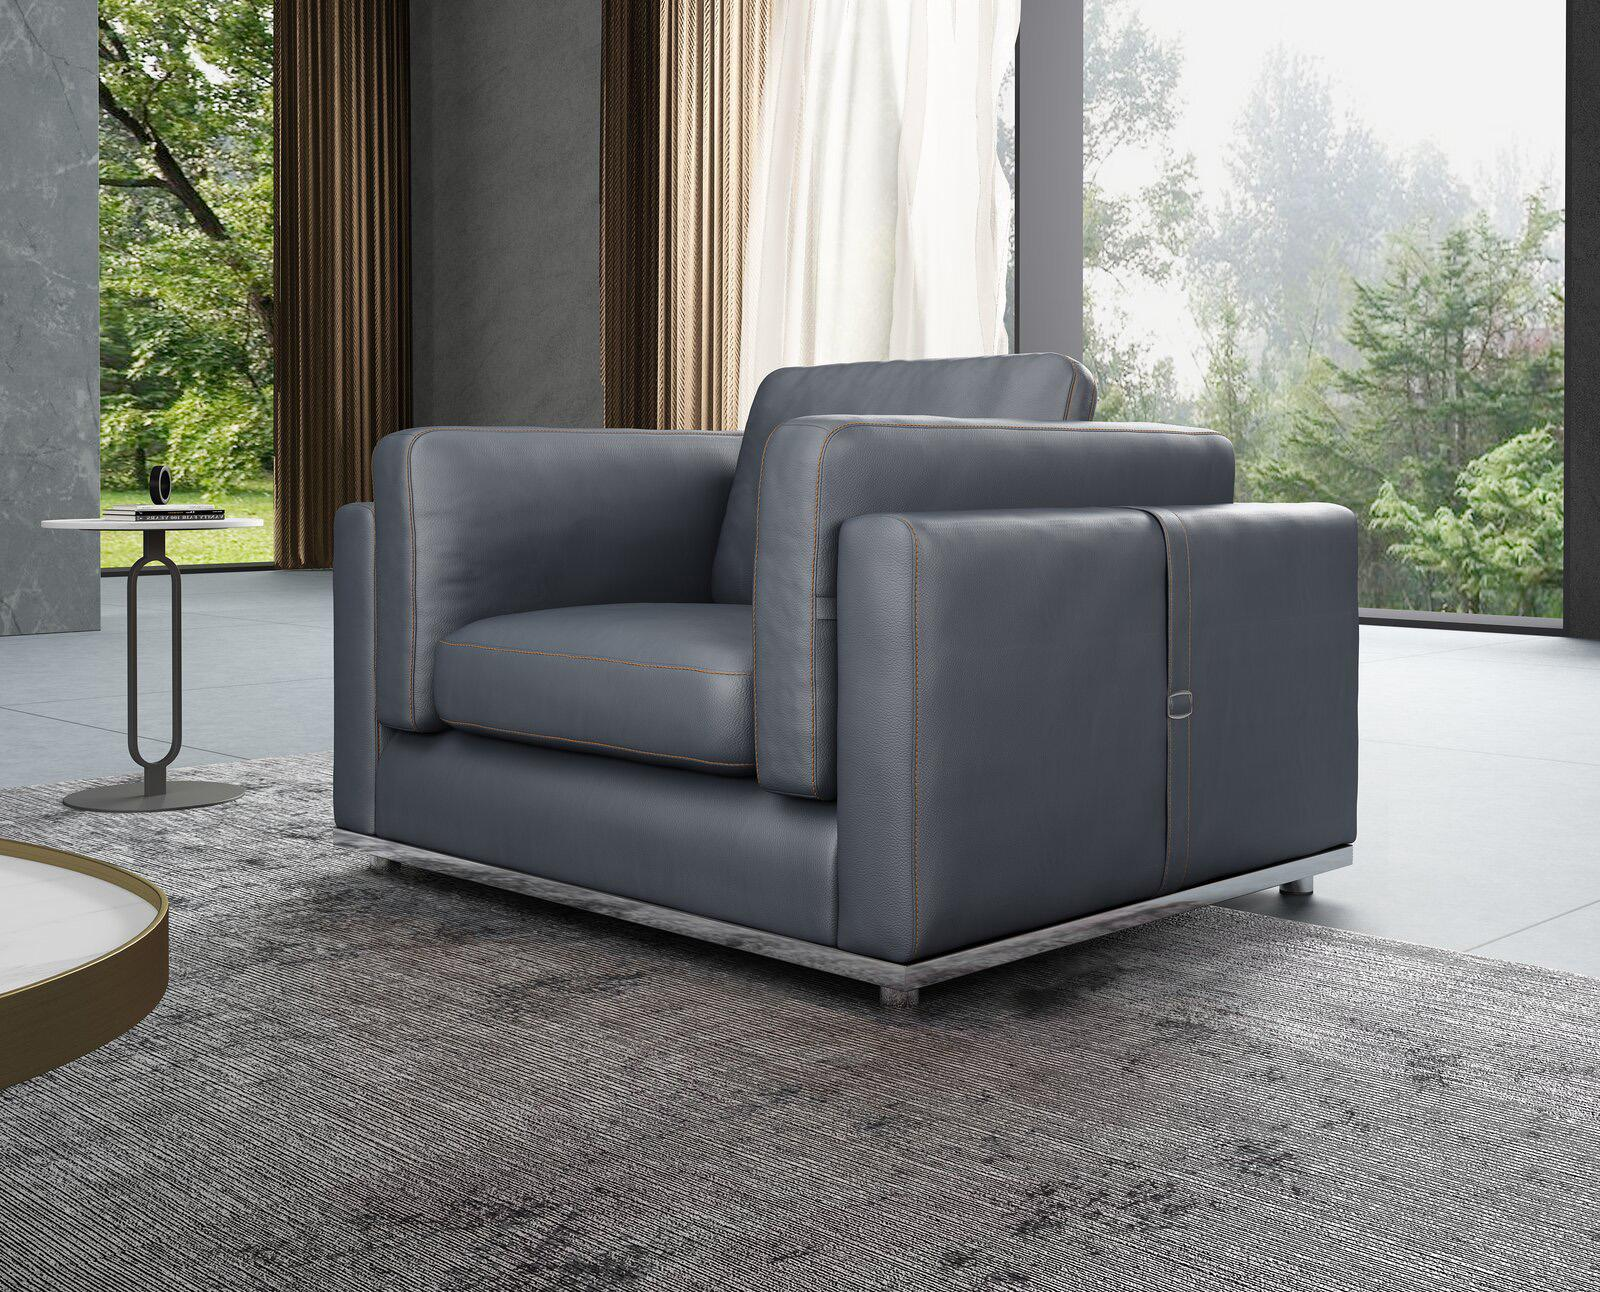 Contemporary, Modern Gray, Smoke Leather and Wood, Genuine leather, Solid Hardwood Arm Chair 1 pcs PICASSO by European Furniture